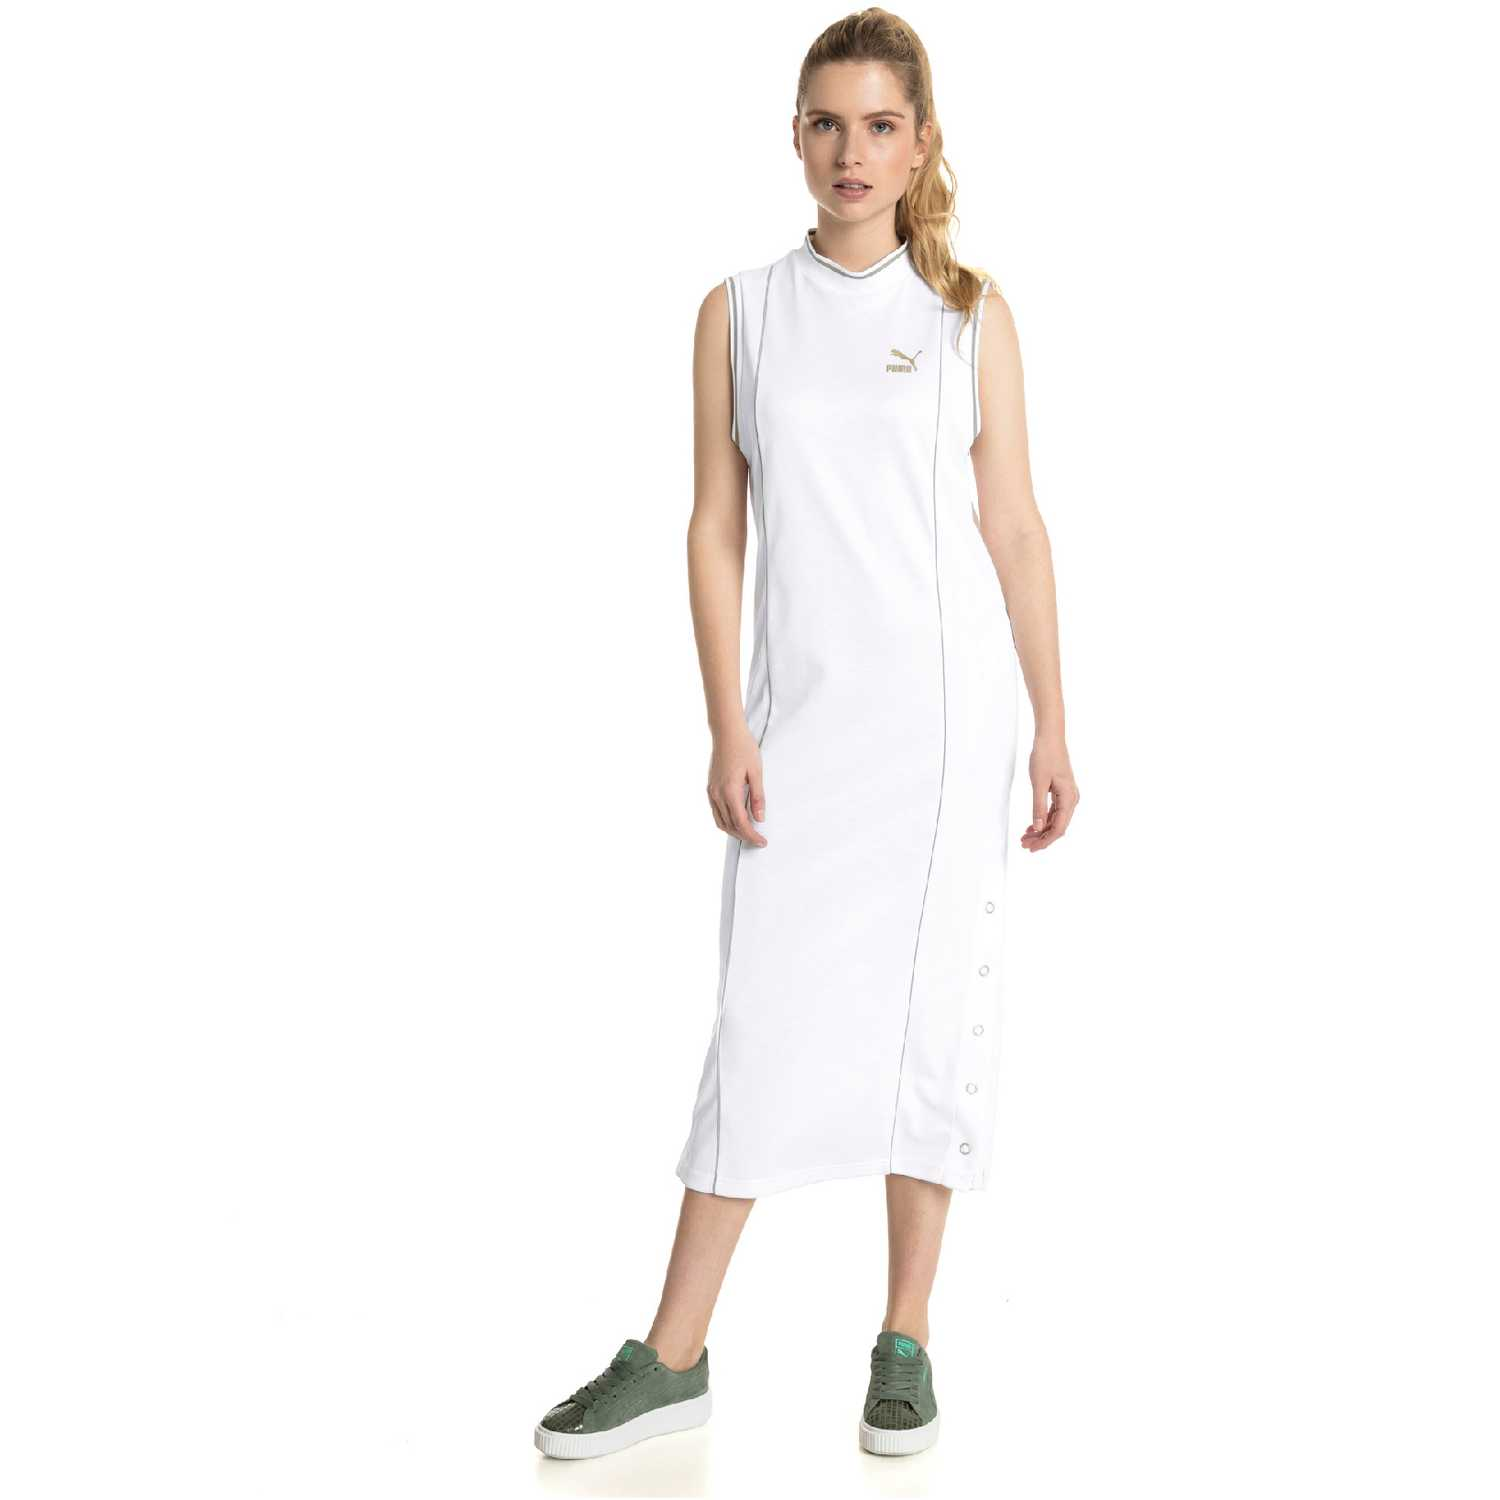 Puma retro dress Blanco Casual